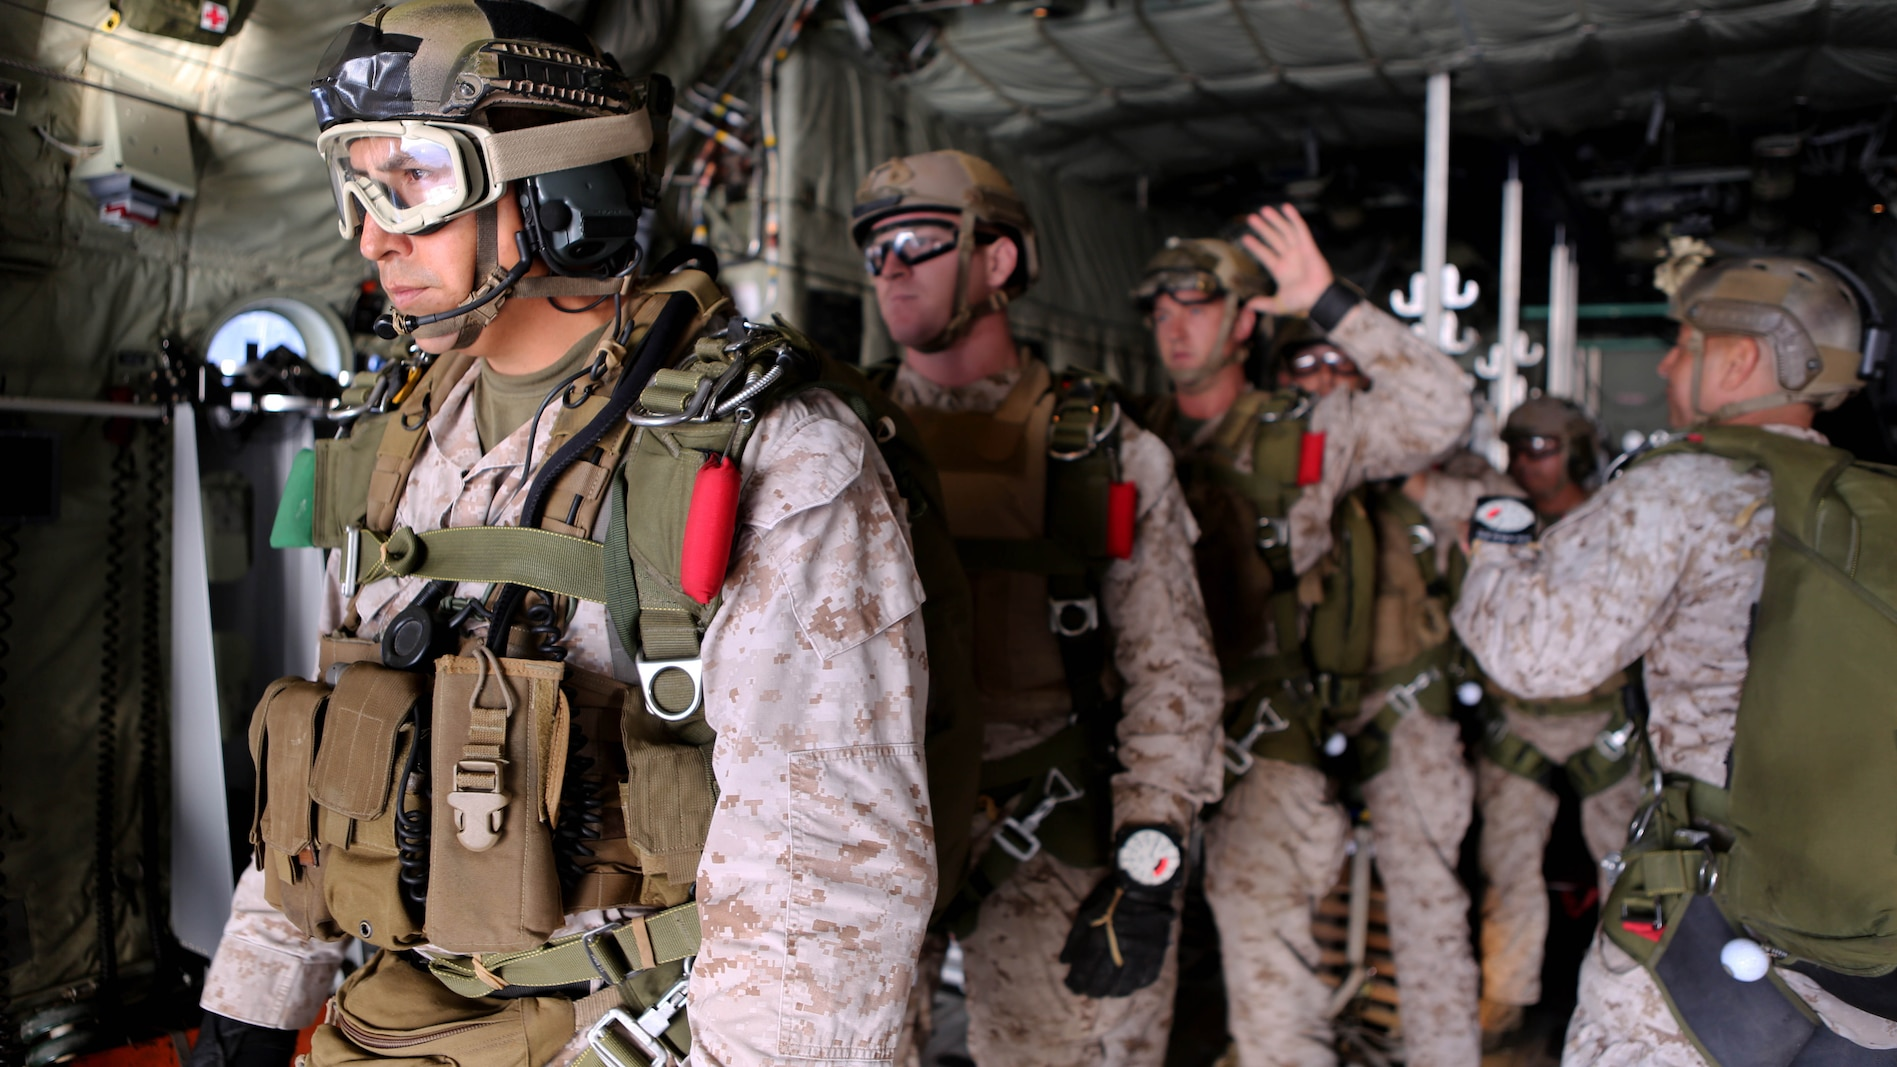 Marines with 1st Reconnaissance Battalion, 1st Marine Division prepare to conduct free fall jump training from a C-130 Hercules with 3rd Marine Aircraft Wing aboard Marine Corps Base Camp Pendleton, Calif., Oct. 16, 2015. 1st Recon conducted parachute operations in preparation for future deployments.